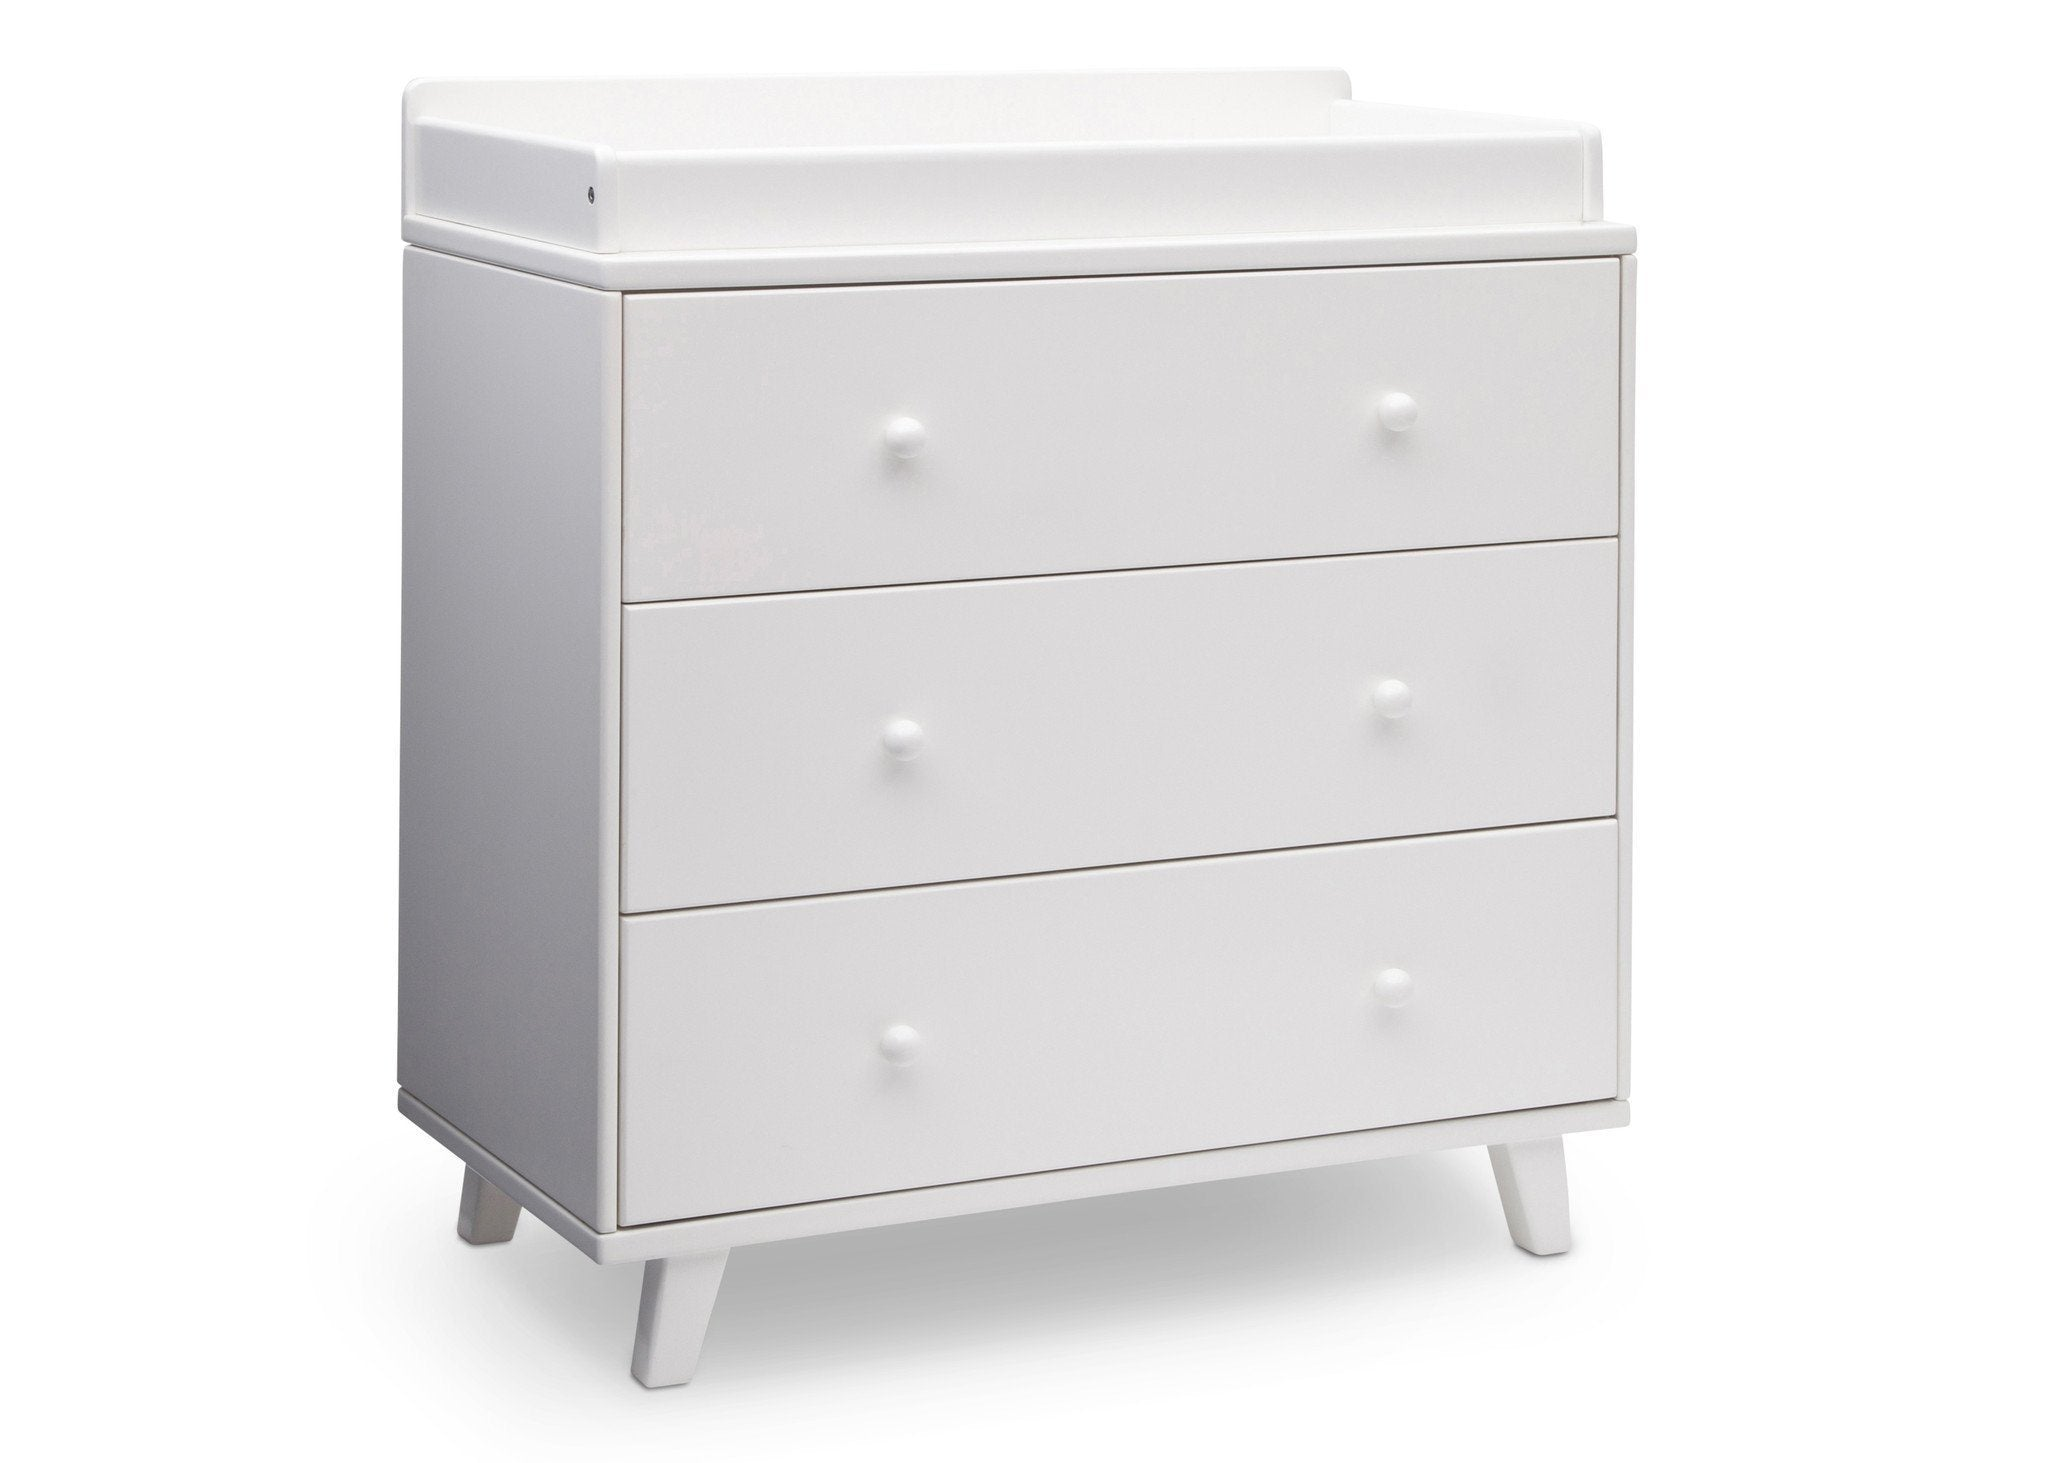 Delta Children White (100) Ava 3 Drawer Dresser with Changing Top, Side View a2a